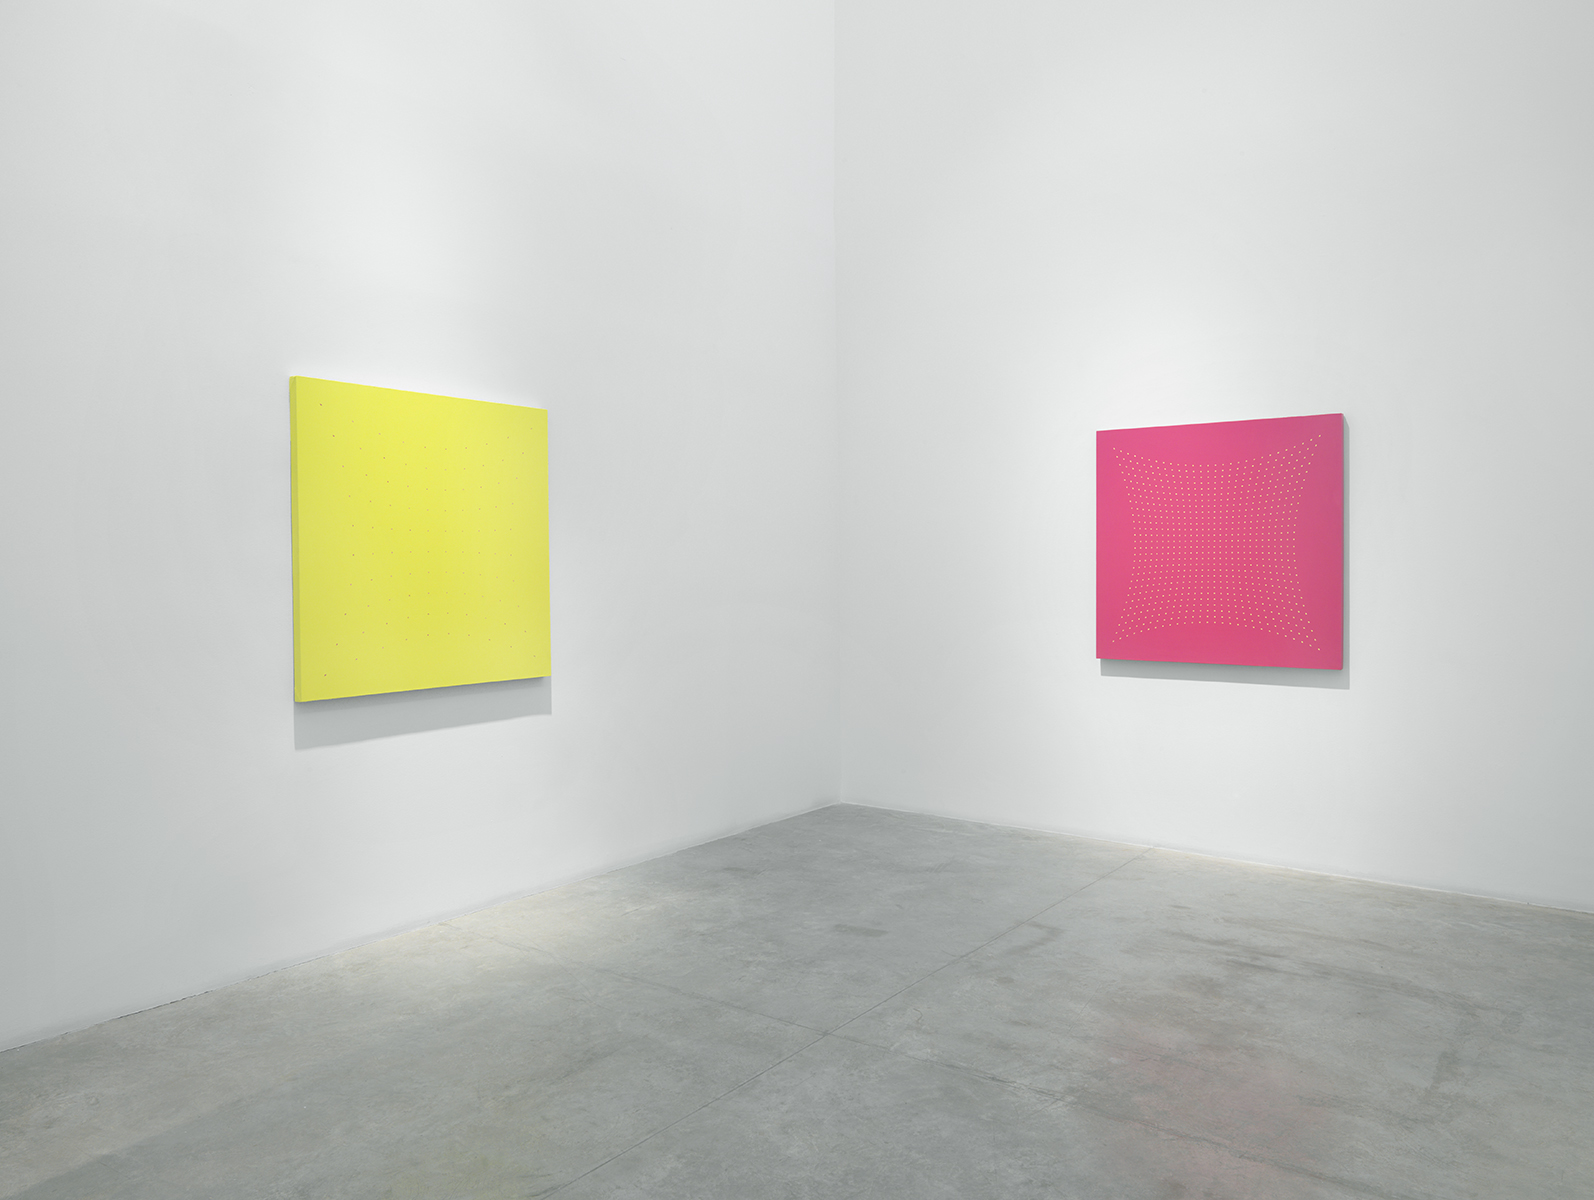 Many Moments - Acid Green and  Galla Placidia - Pink, 2005 Oil on linen,   Courtesy of Christopher Burke Studio